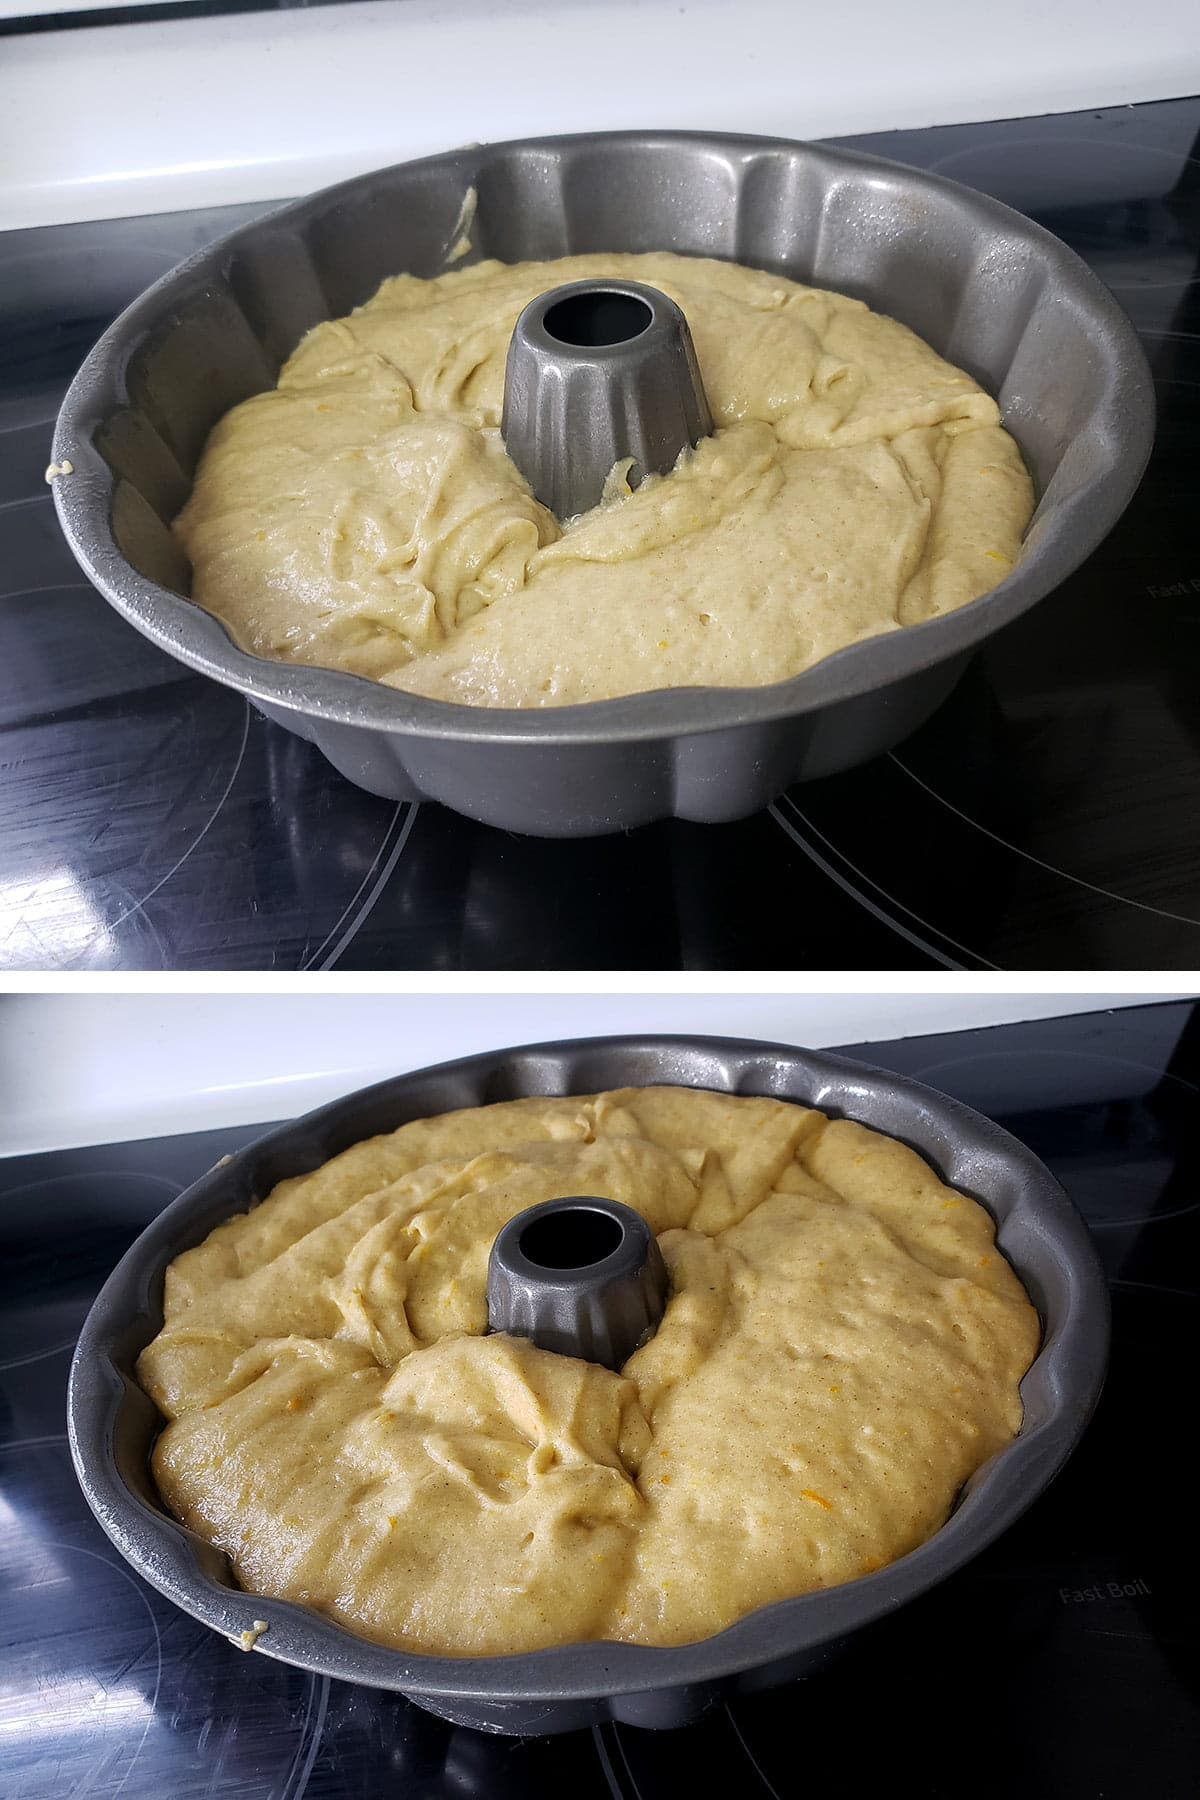 A two part compilation image showing the batter in the bundt pan, before and after rising.